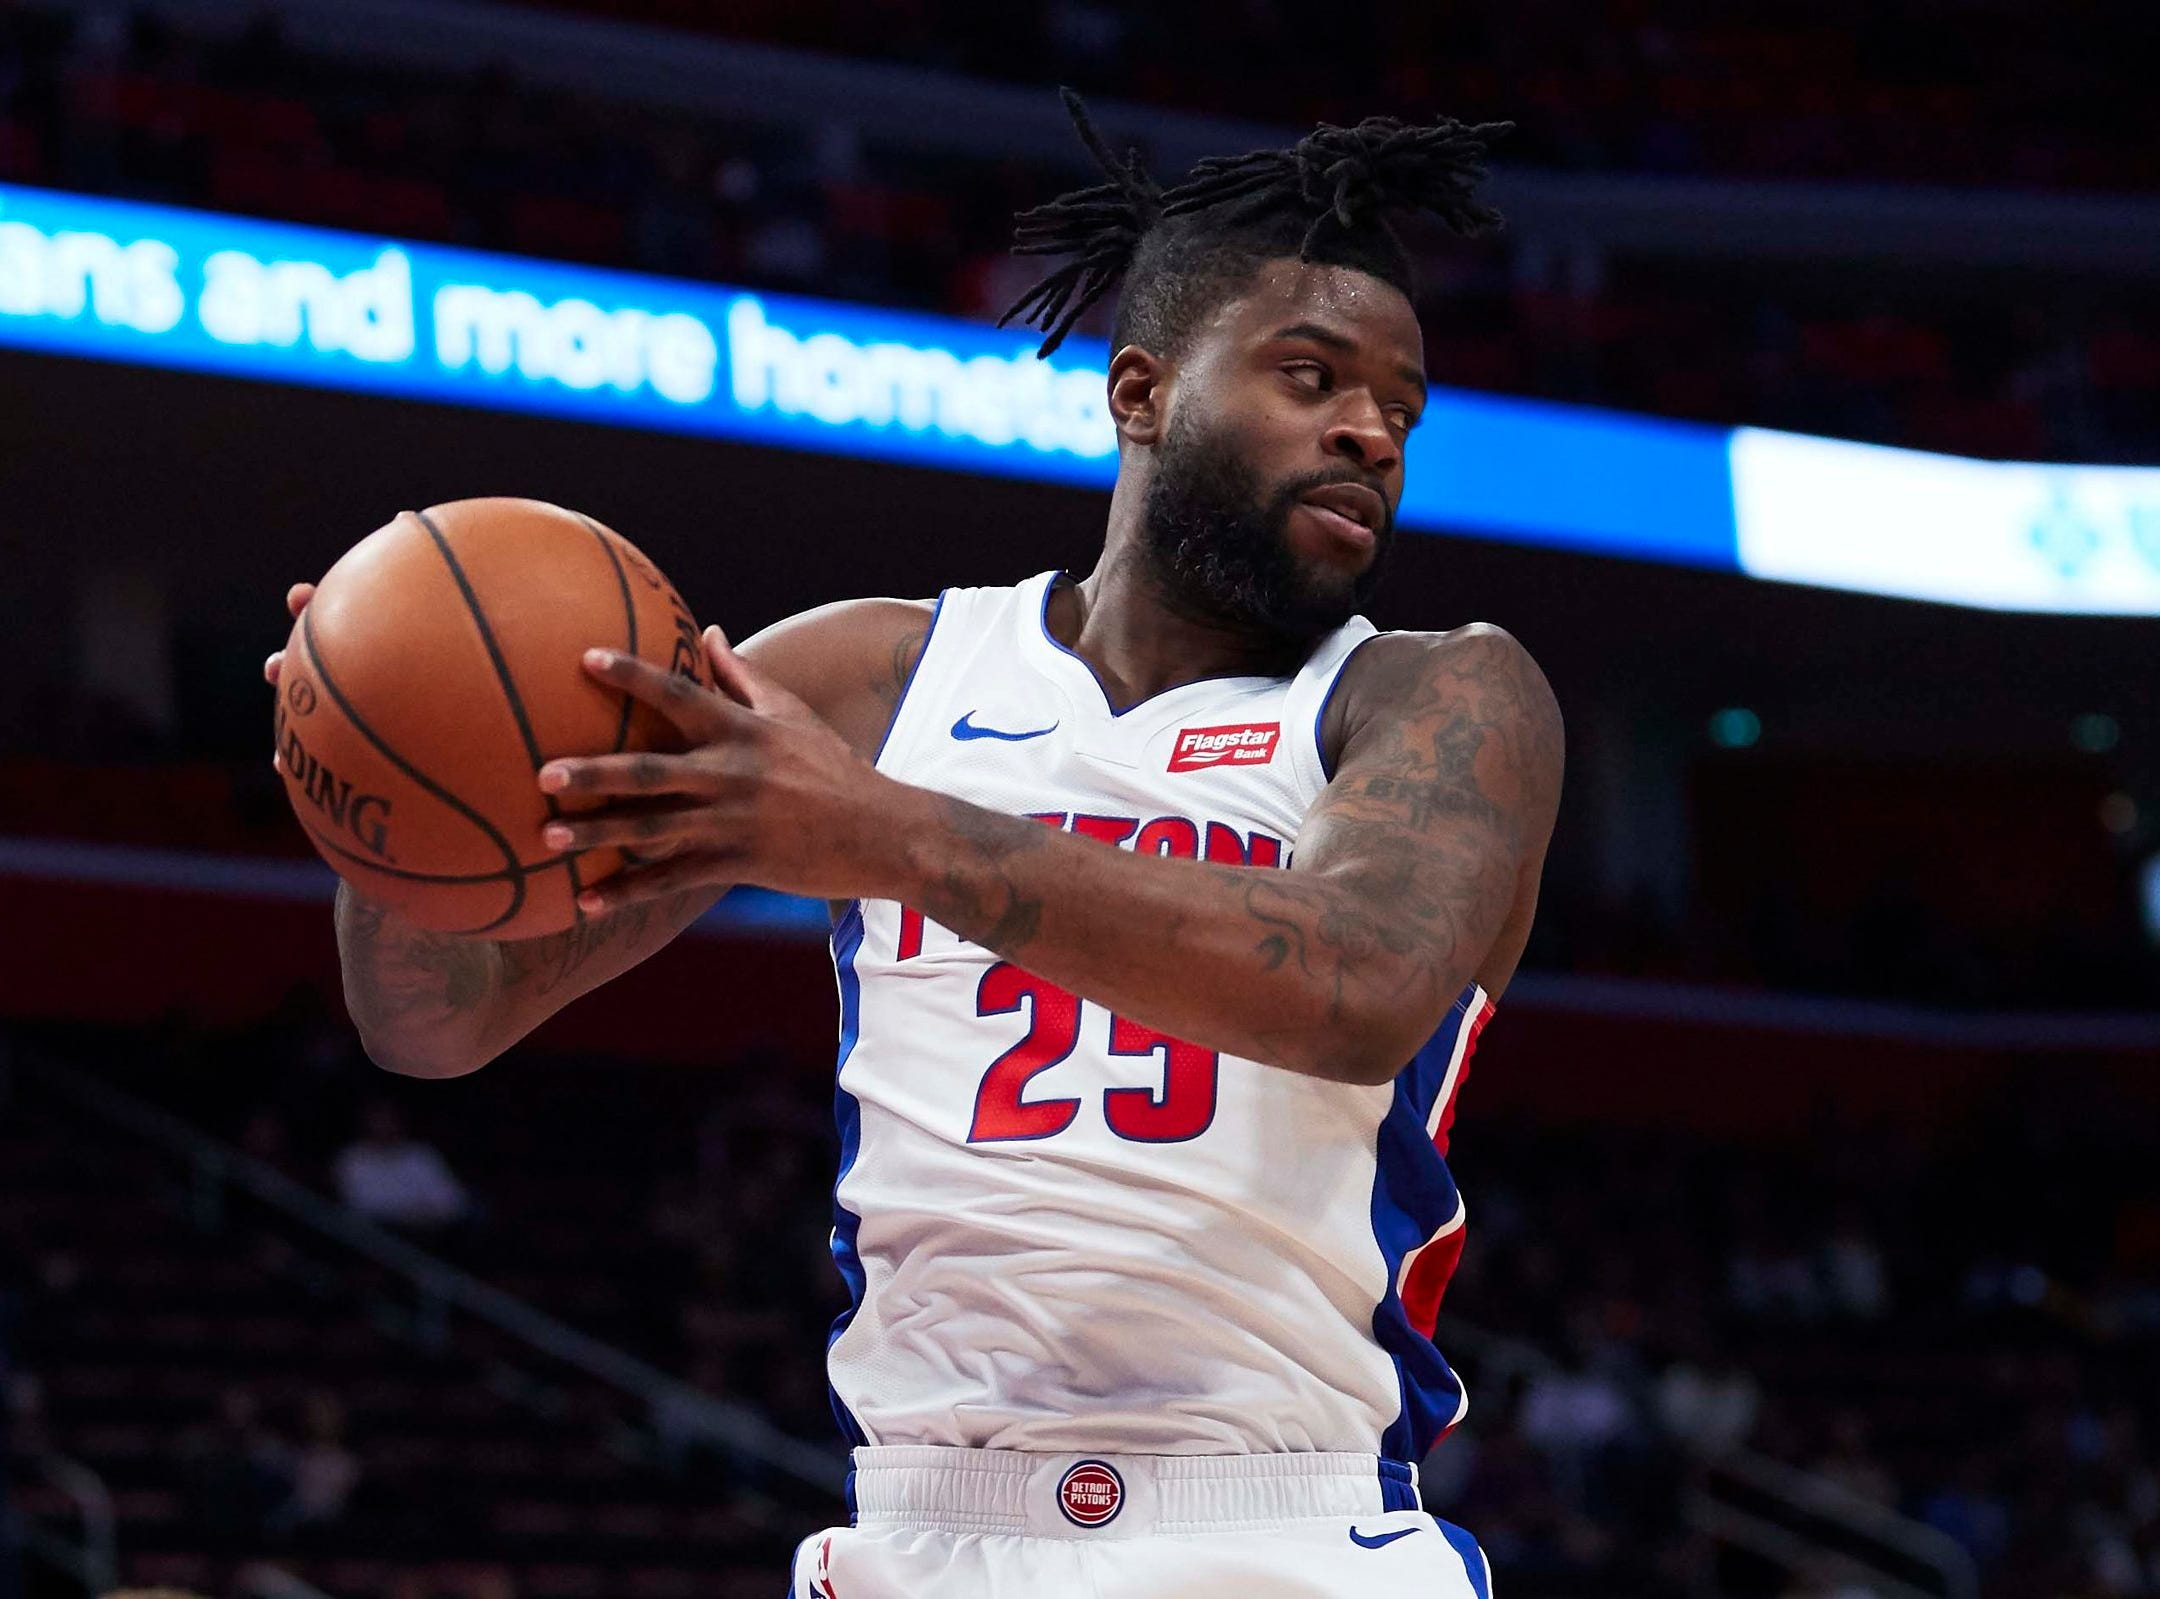 Detroit Pistons guard Reggie Bullock (25) grabs the rebound in the second half against the New York Knicks at Little Caesars Arena.